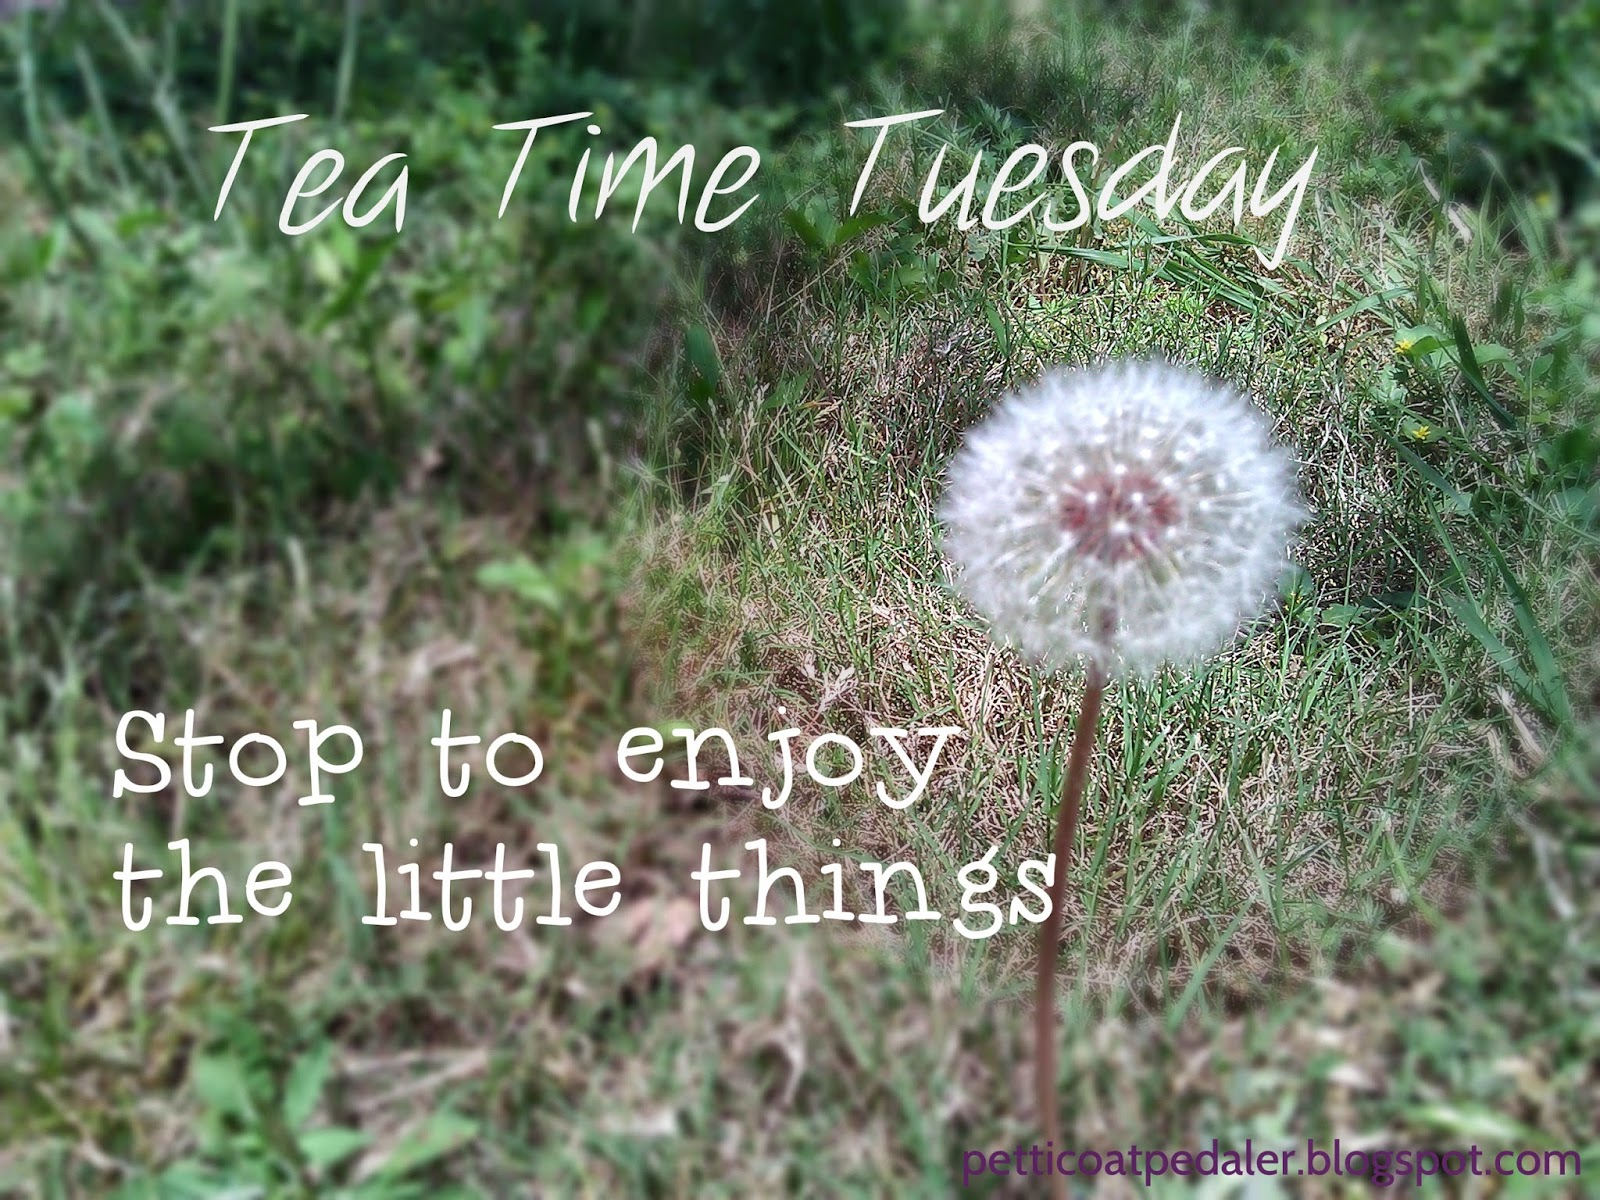 Tea Time Tuesday.  Stop and enjoy the little things.